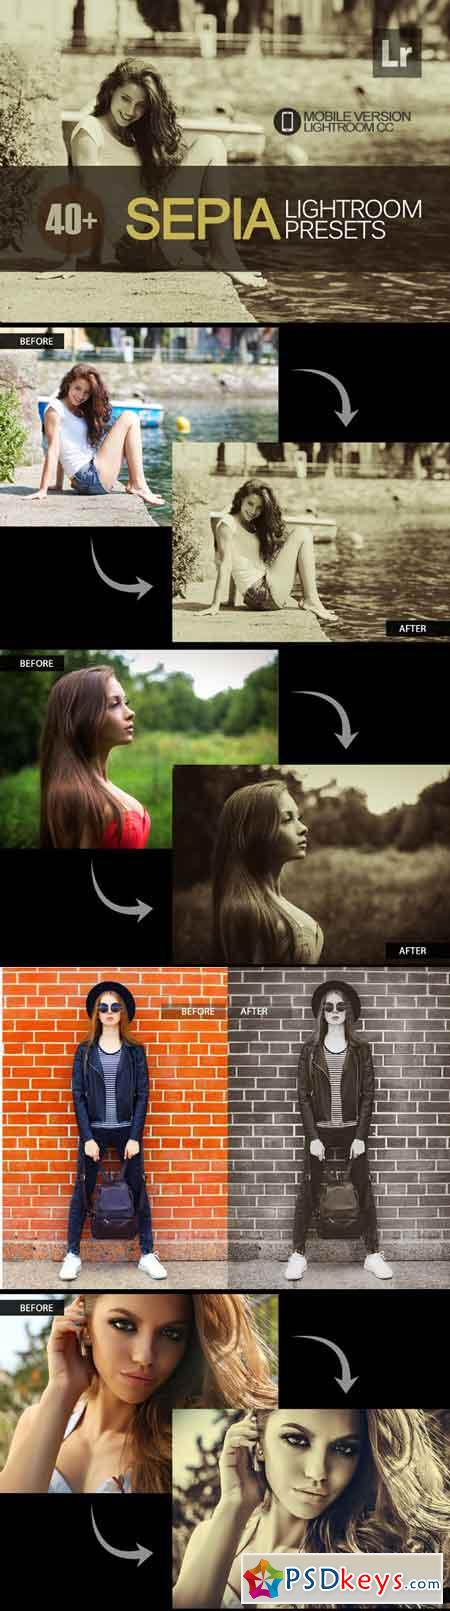 40+ Sepia Lightroom Mobile bundle 3504051